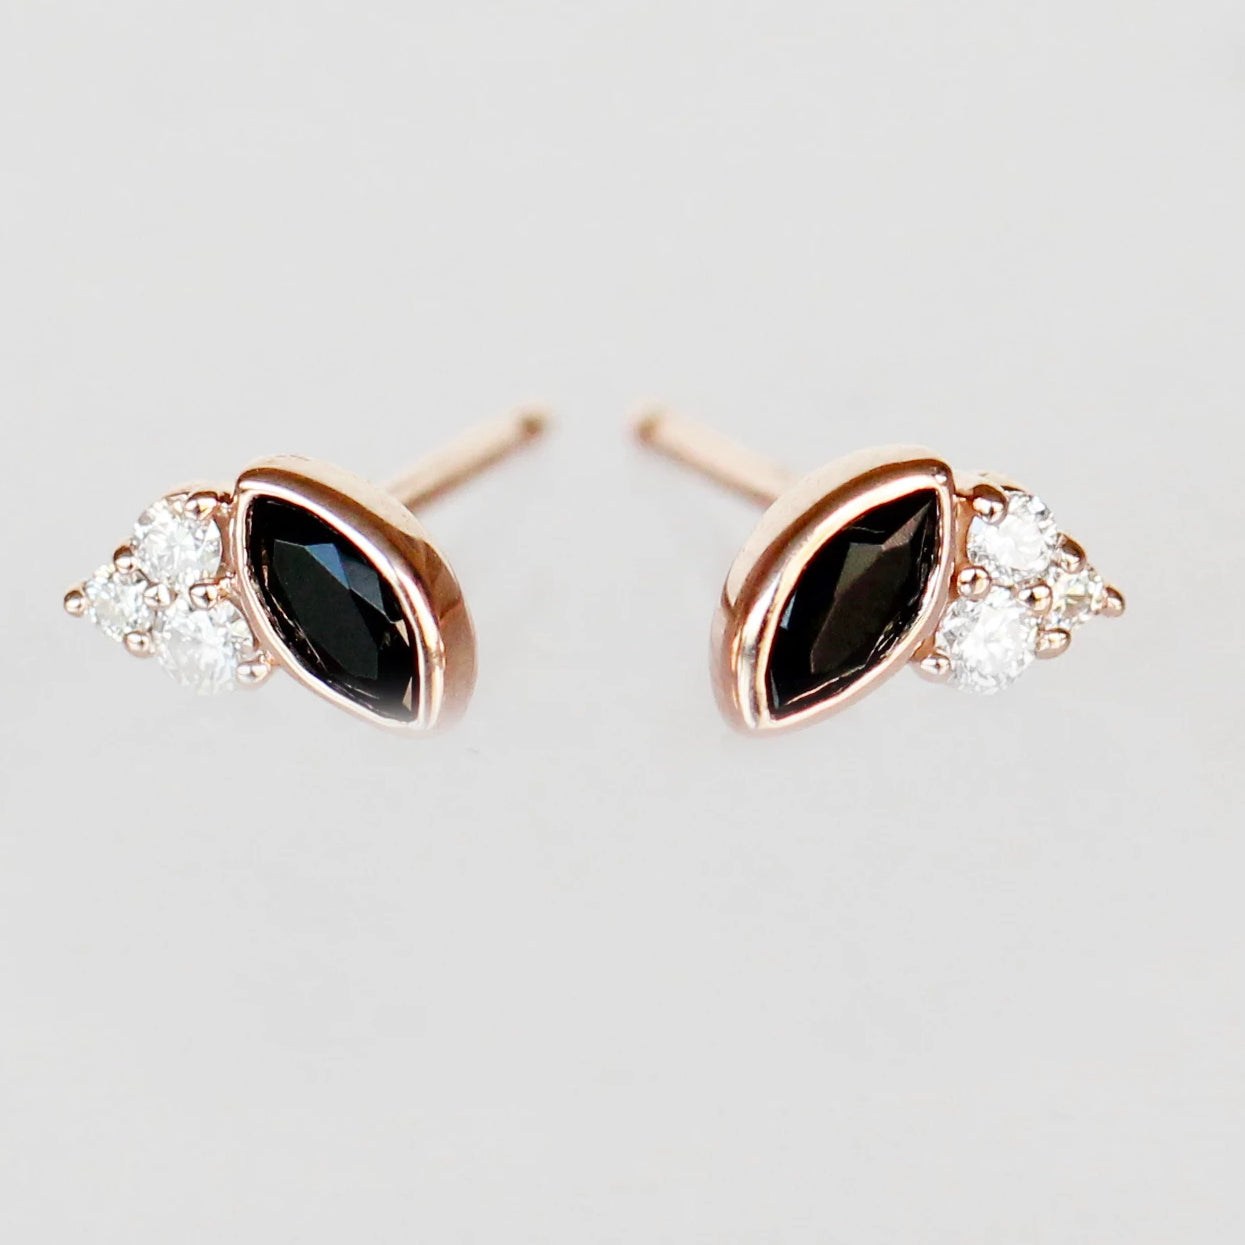 Jolean Earrings with Onyx + Diamonds - 14k Rose Gold- Ready to Ship - Celestial Diamonds ® by Midwinter Co.